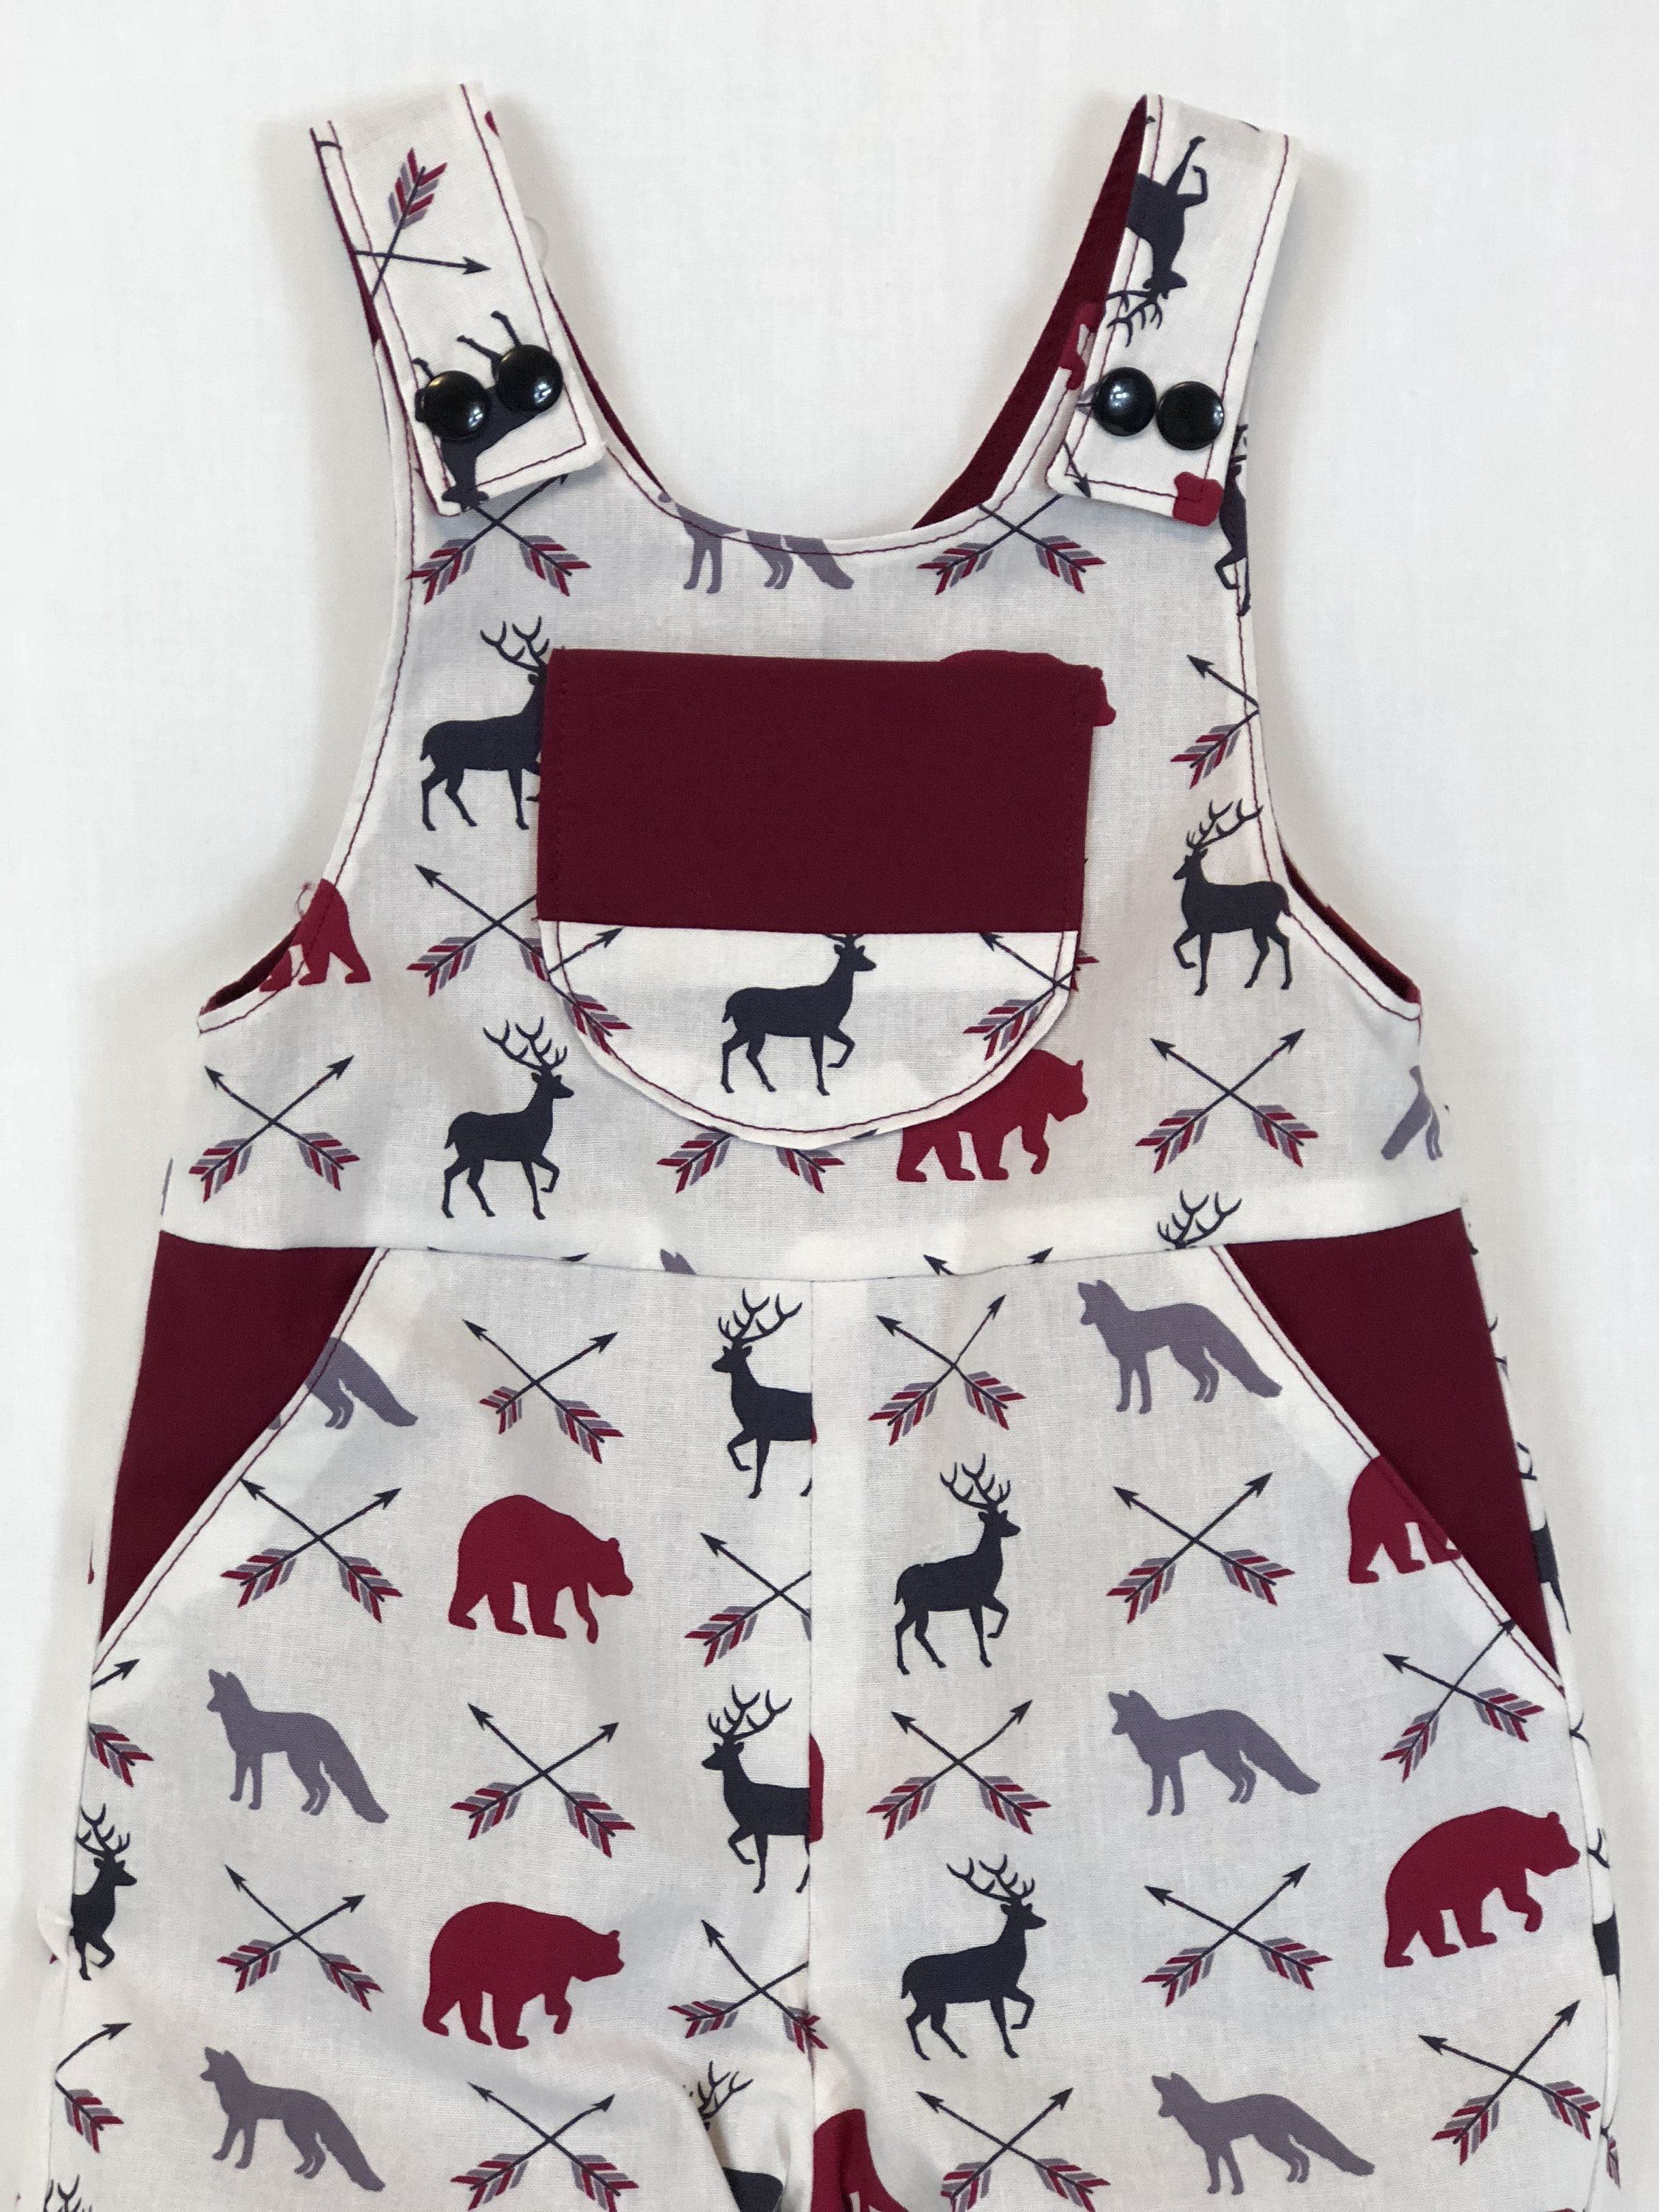 fcc26bbe6c8 Wildlife Romper - Reversible Baby Romper - Baby Summer Romper - Baby  Dungarees - Unisex Romper - by SimplyTotsBoutique on Etsy